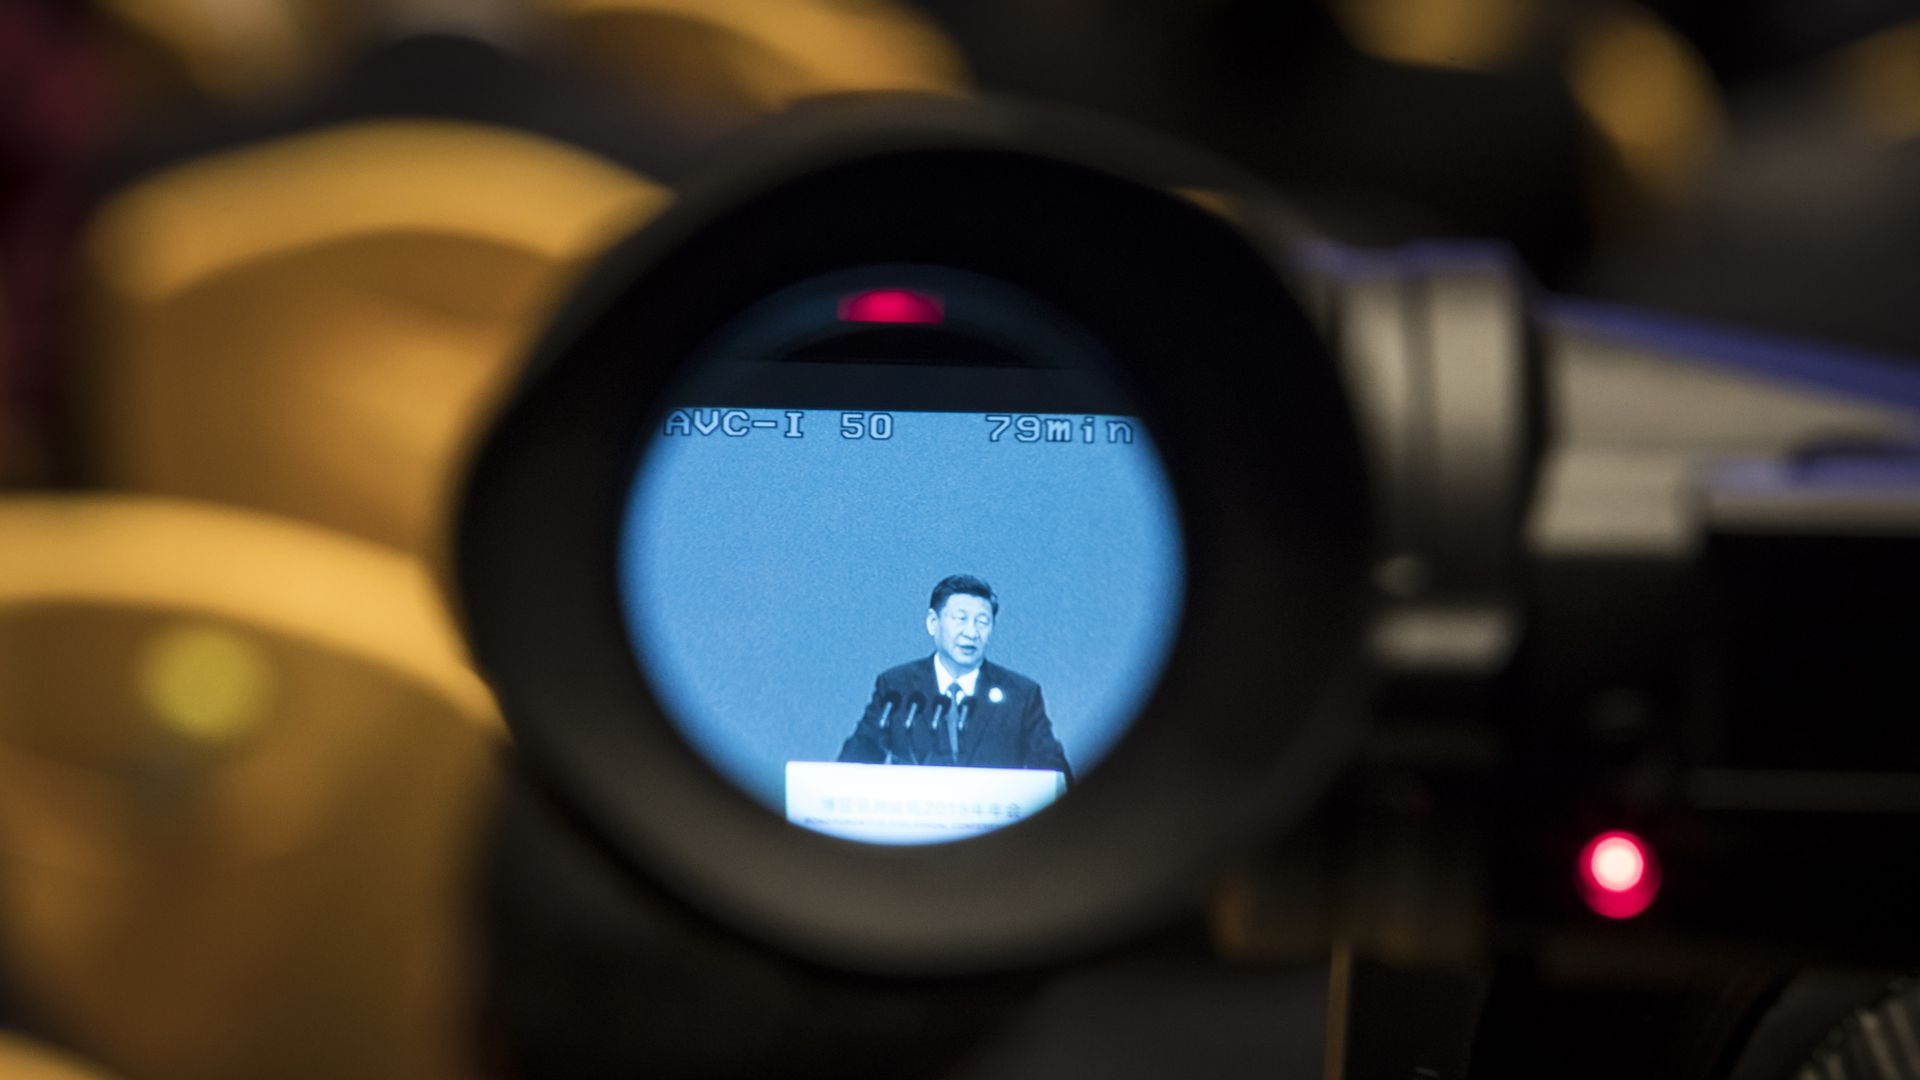 Xi seen through the viewfinder of a camera